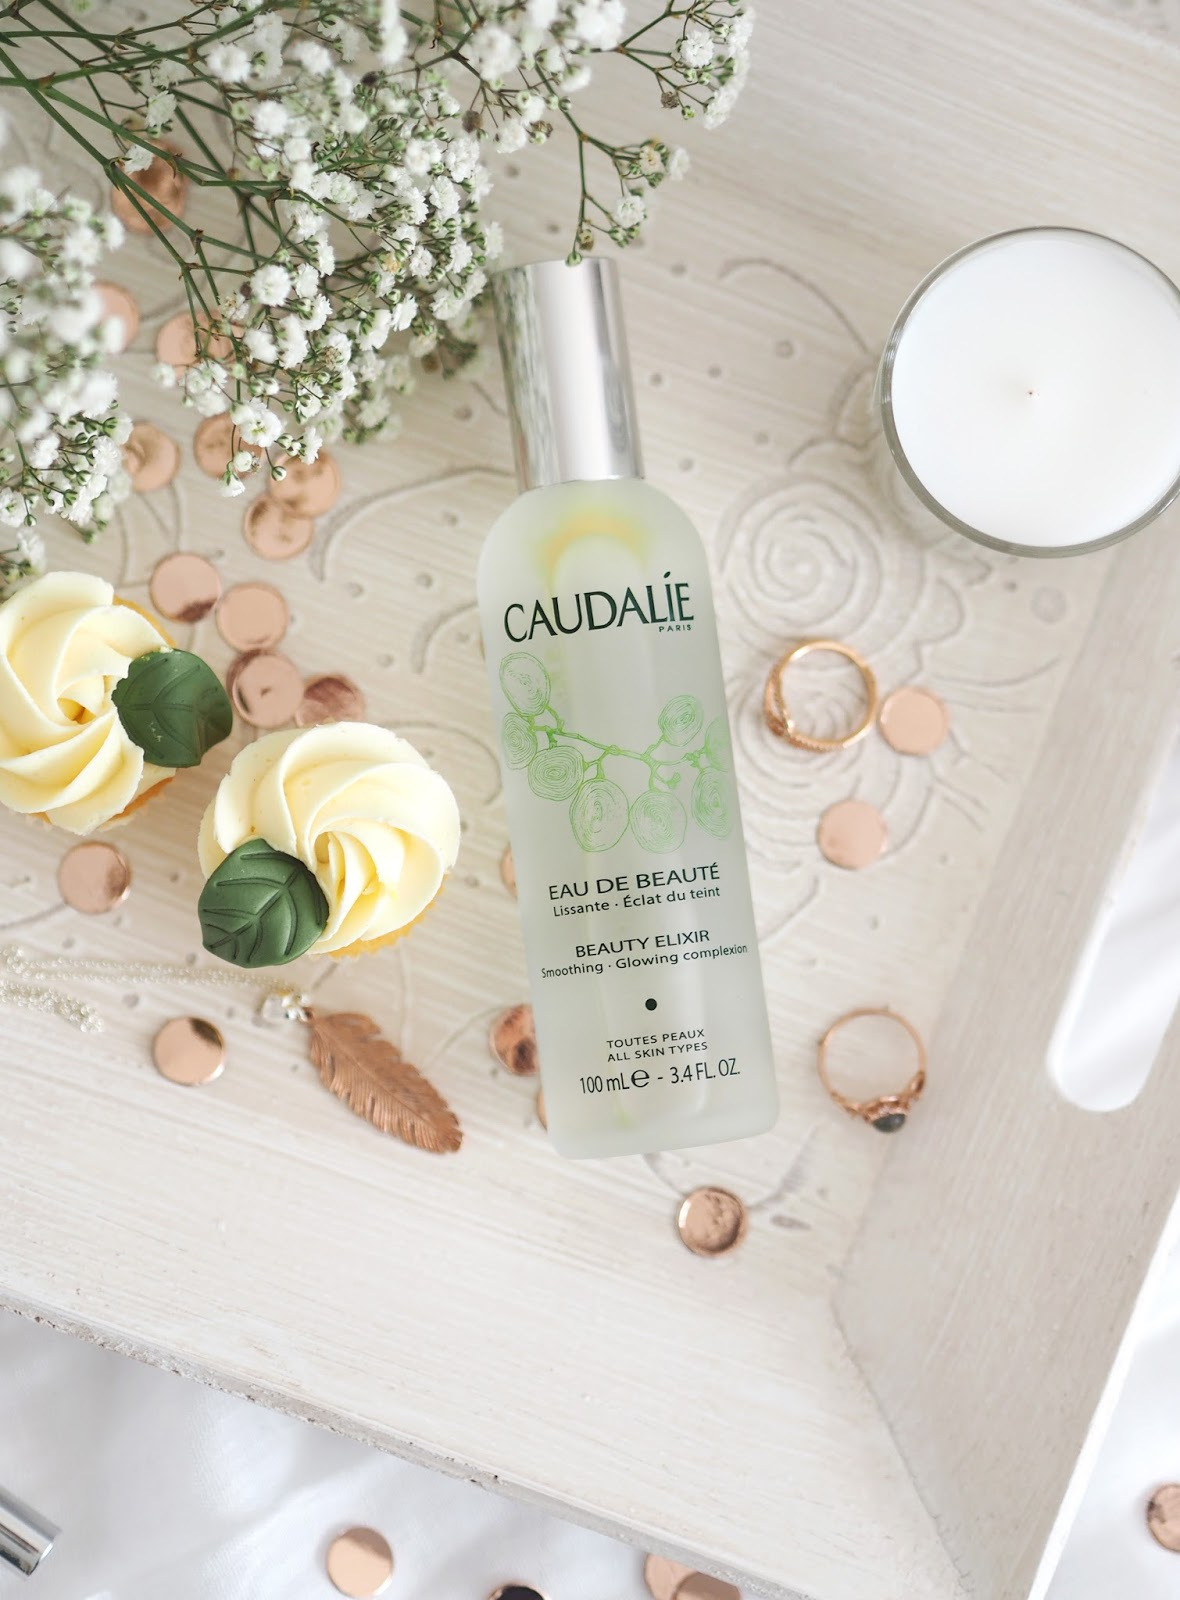 Introducing an Hour of Caudalie Skincare on QVC, Katie Kirk Loves, UK Blogger, Beauty Blogger, Skincare Blogger, Beauty Review, Skincare Review, Caudalie Skincare, QVC Beauty, QVC UK, Caudalie on QVC, Caudalie Beauty, Caudalie Products